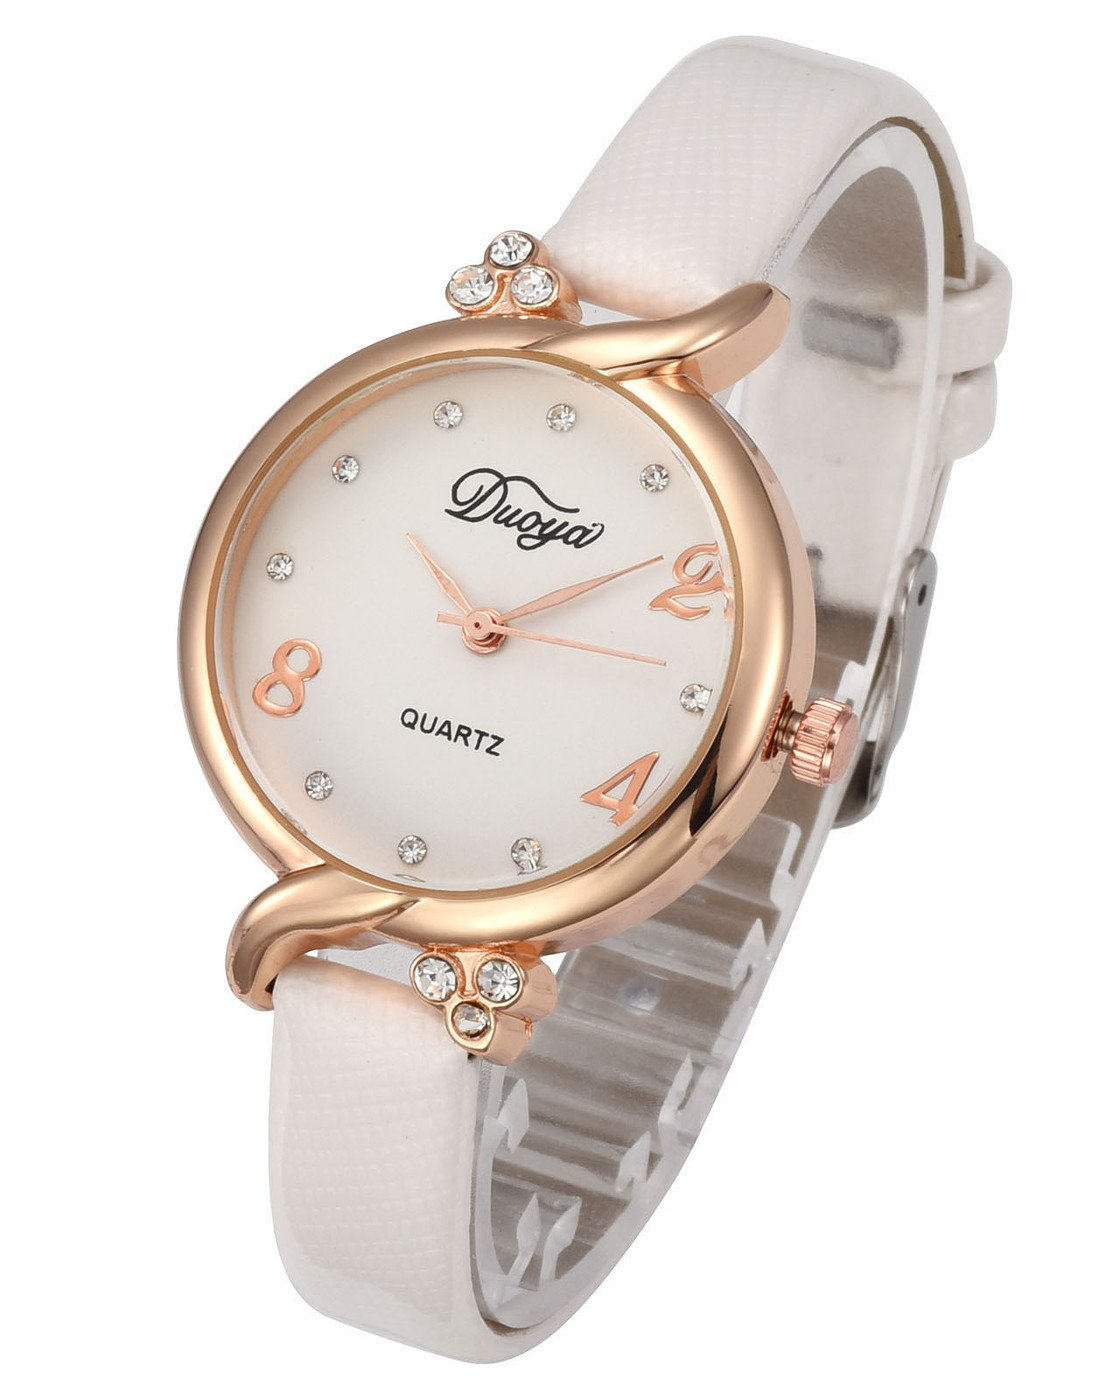 Top Plaza Women Fashion Watches Leather Band Luxury Rose Gold Analog Quartz Watches Girls Ladies Wristwatch - White